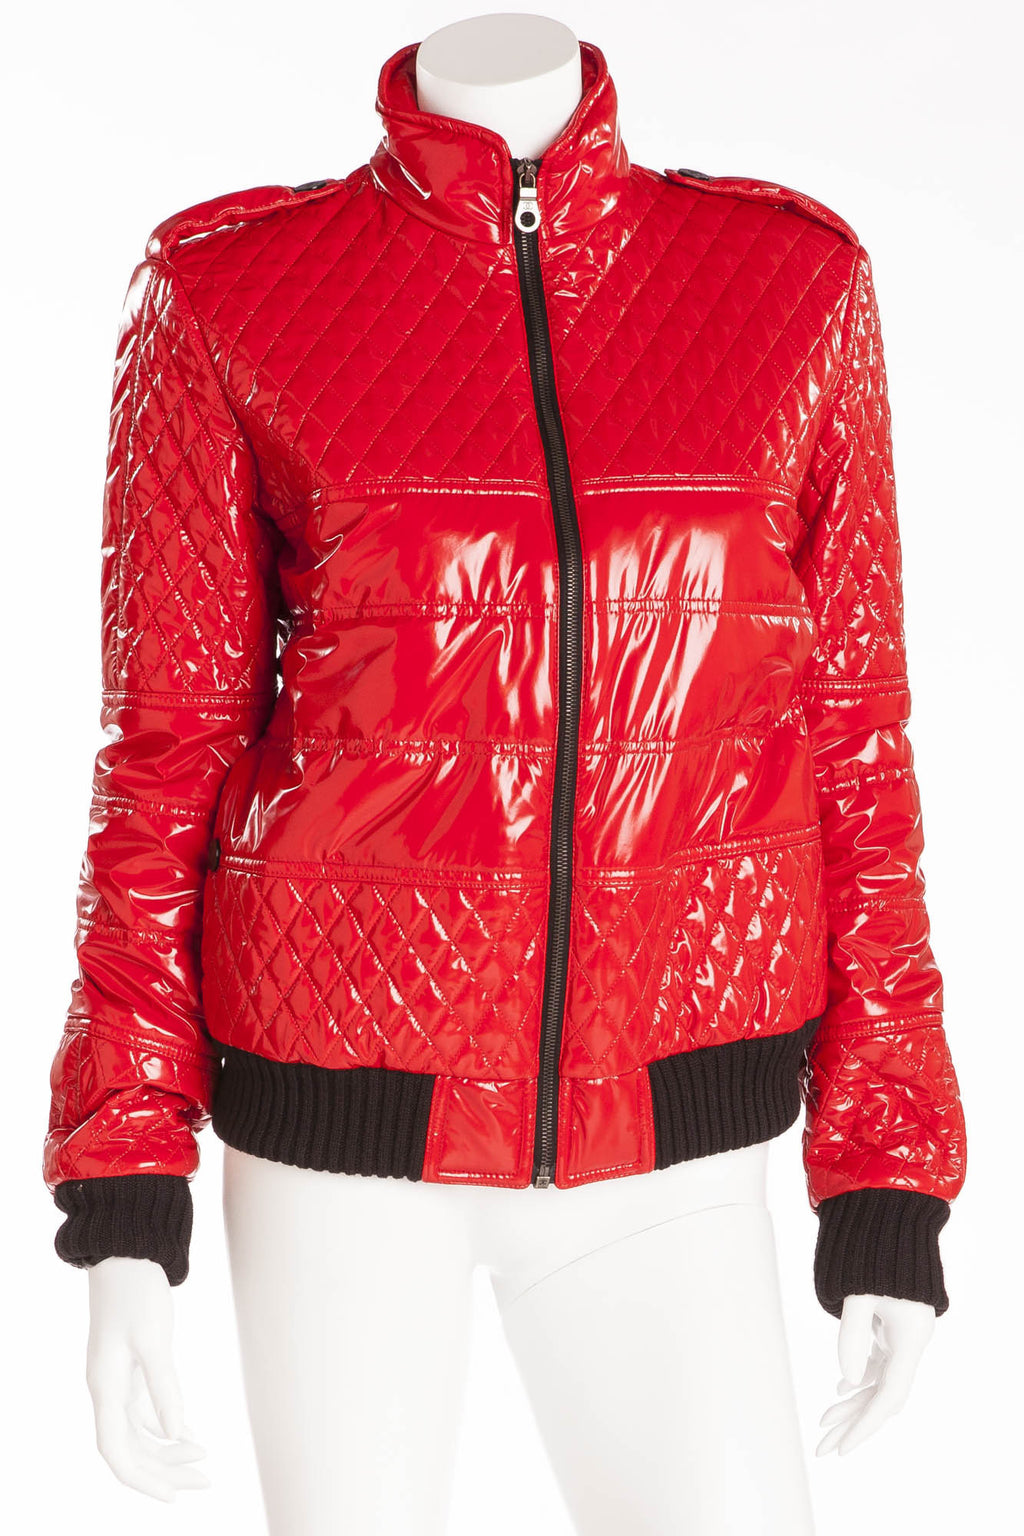 Chanel  - New with Tags Red Pleather Quilt Bomber Jacket - FR 40